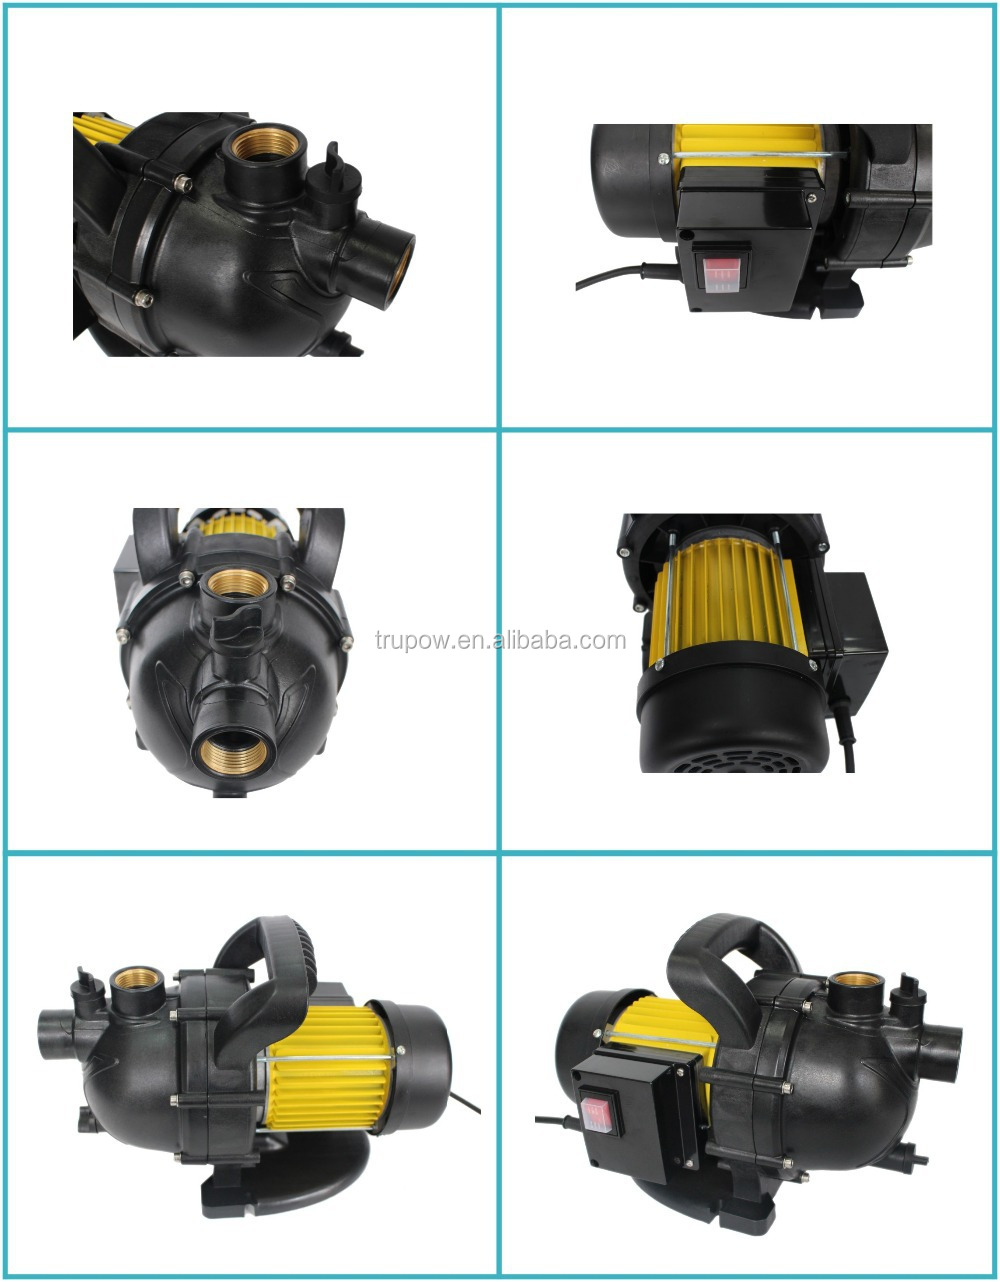 600W Easy Carry Self Priming Garden Water Jet Pump Price